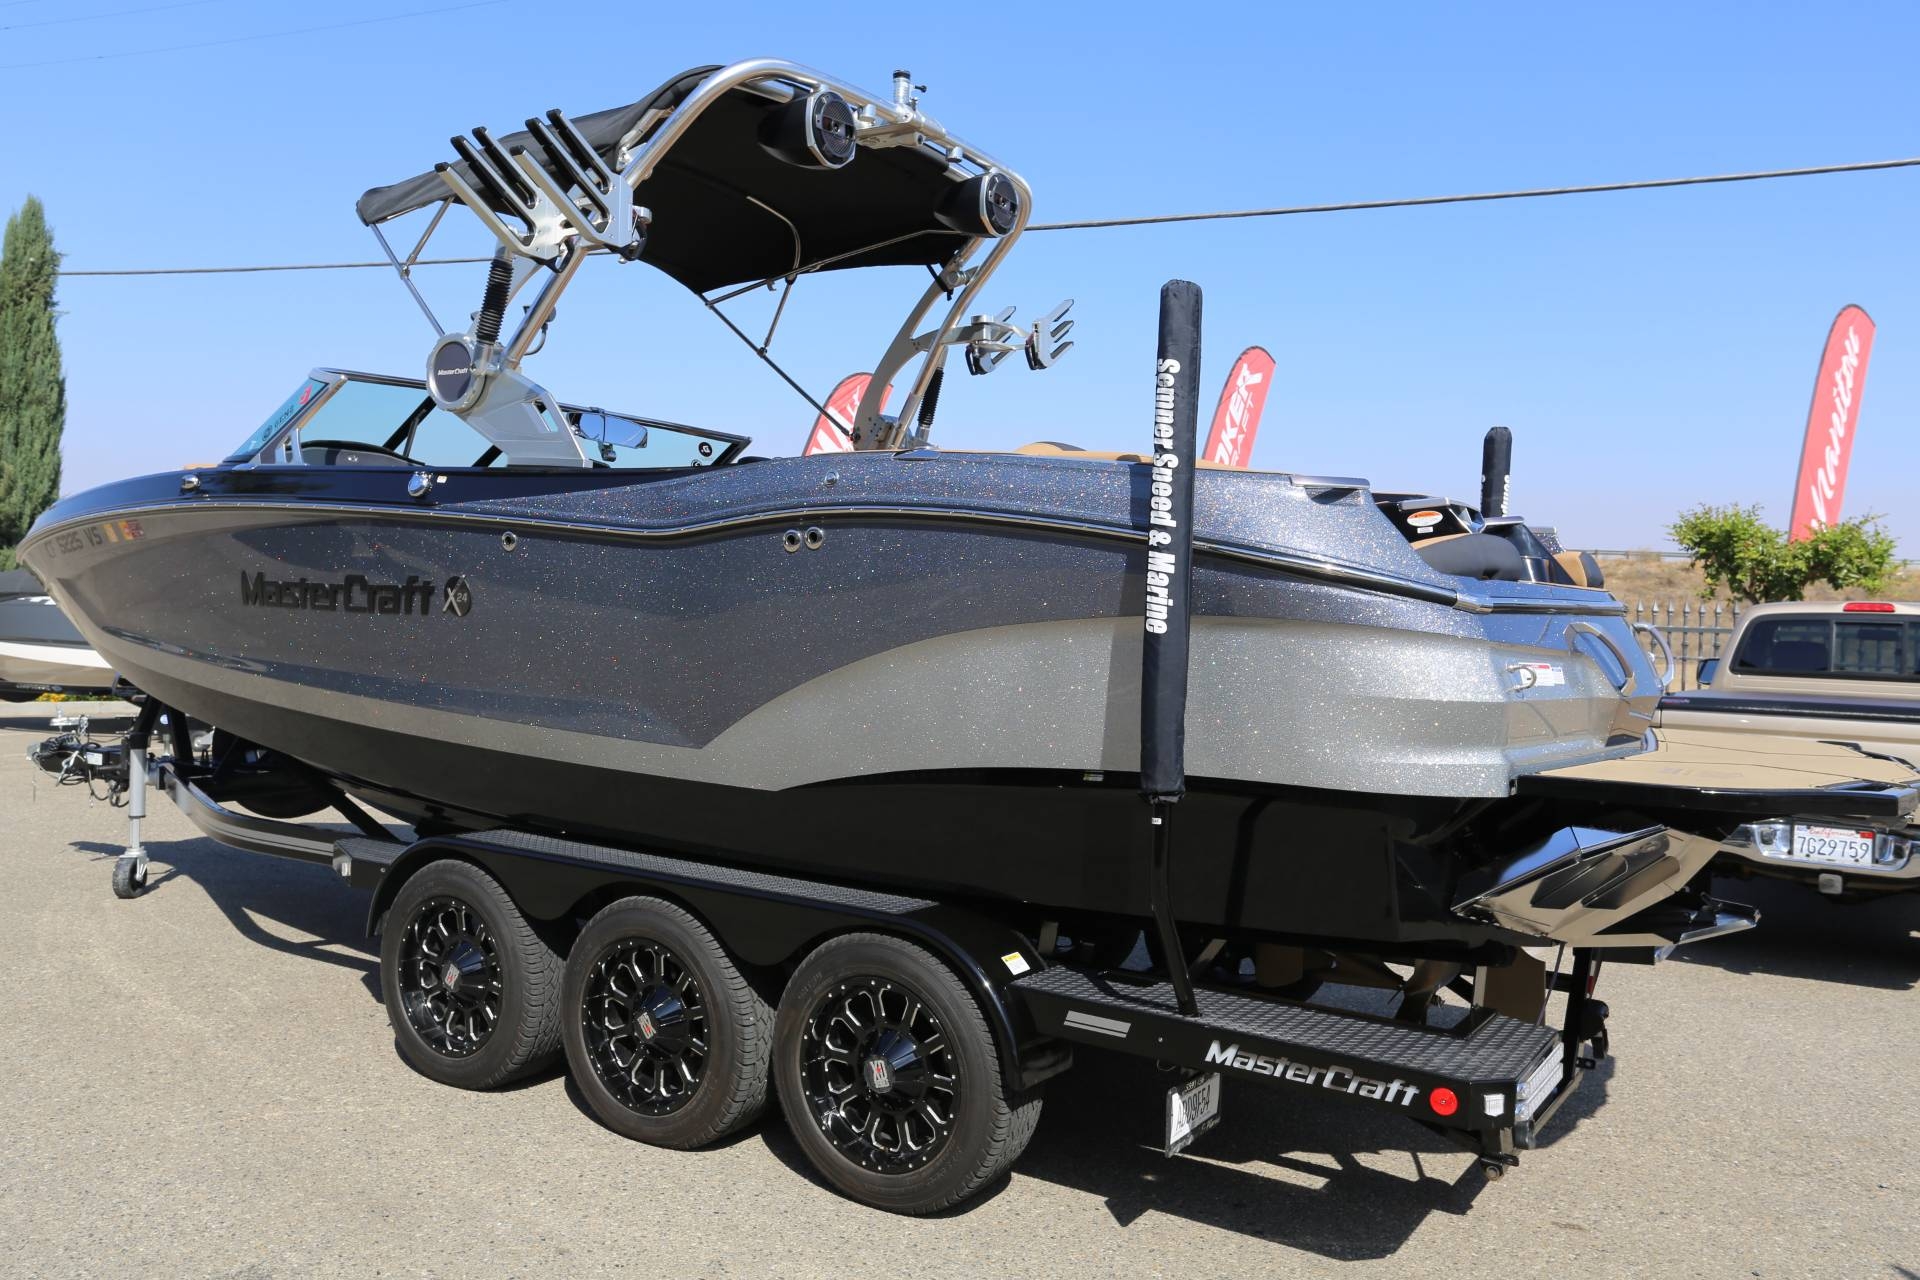 2019 Mastercraft X24 in Madera, California - Photo 3